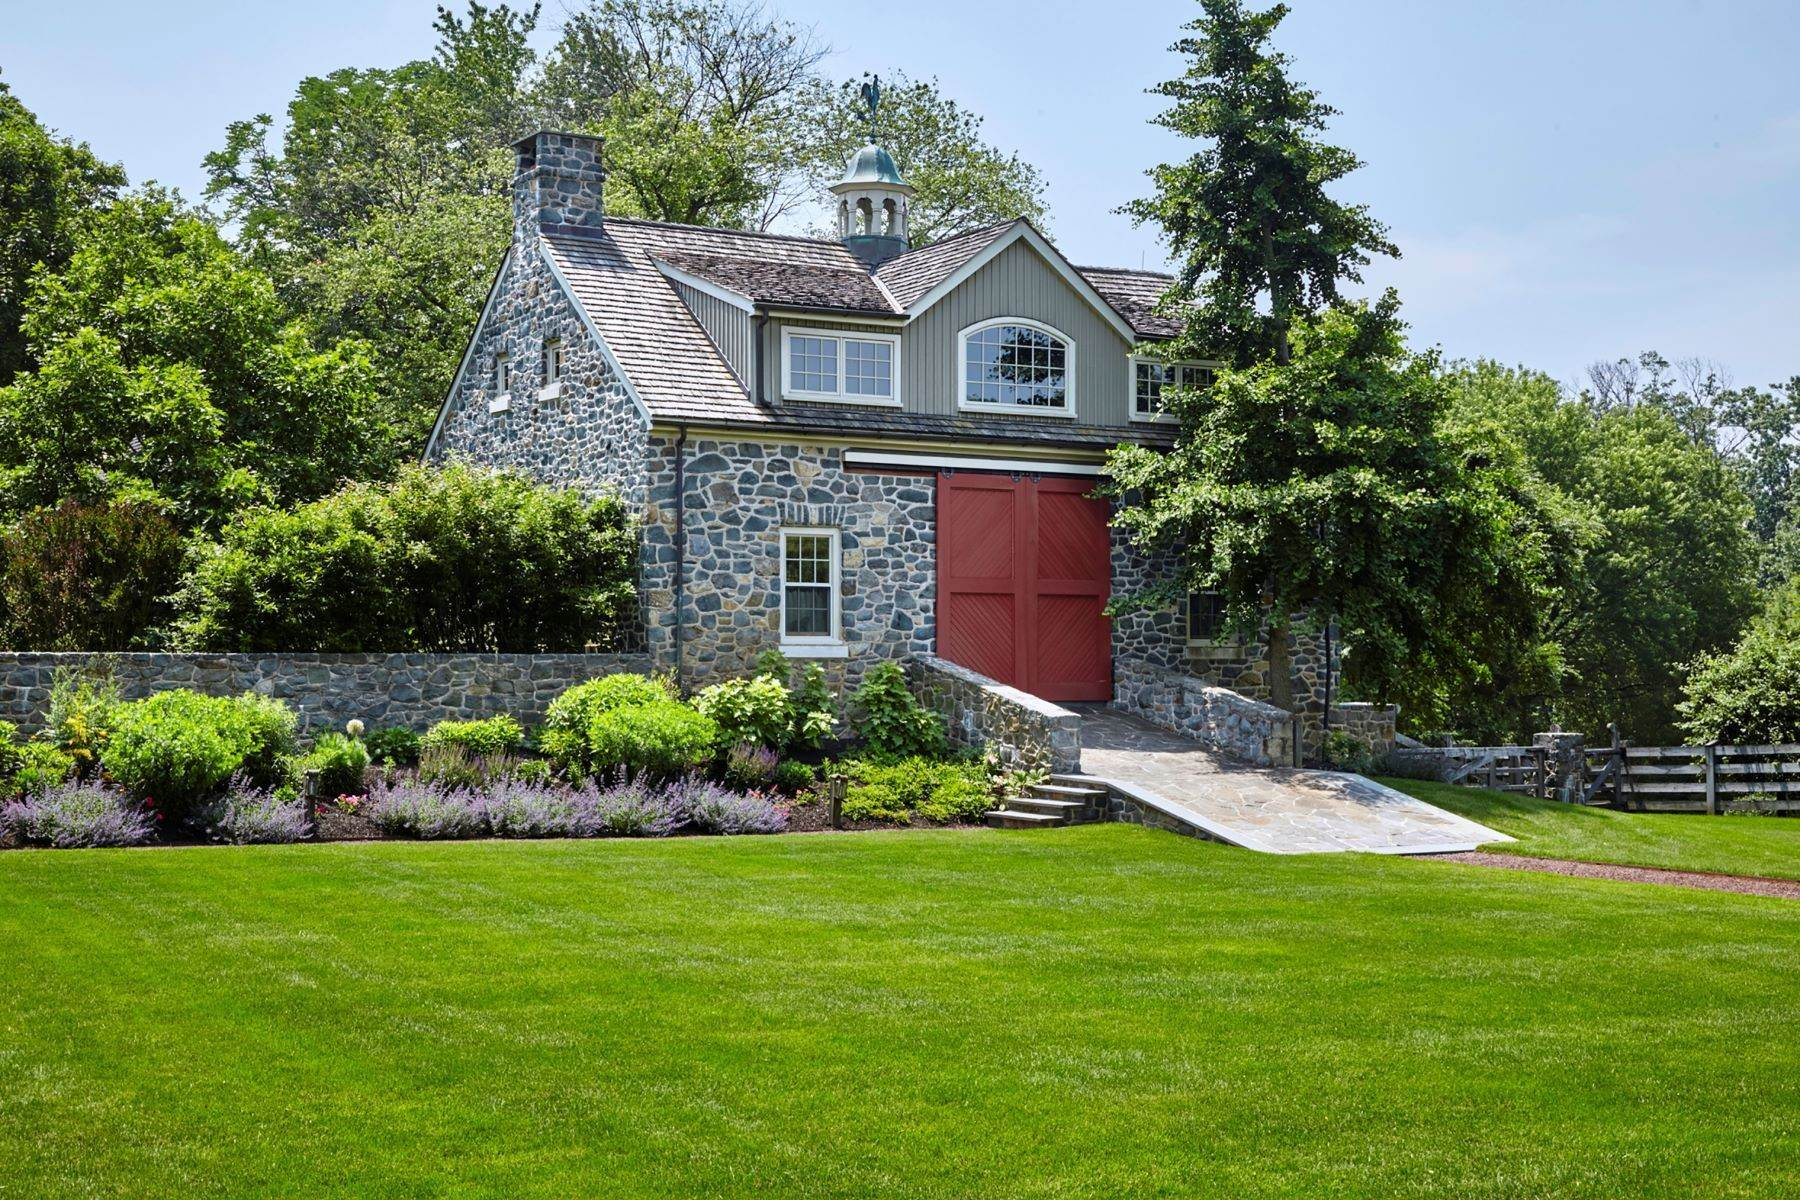 36. Single Family Homes for Sale at Albermarle Compound 770 GODFREY RD Villanova, Pennsylvania 19085 United States